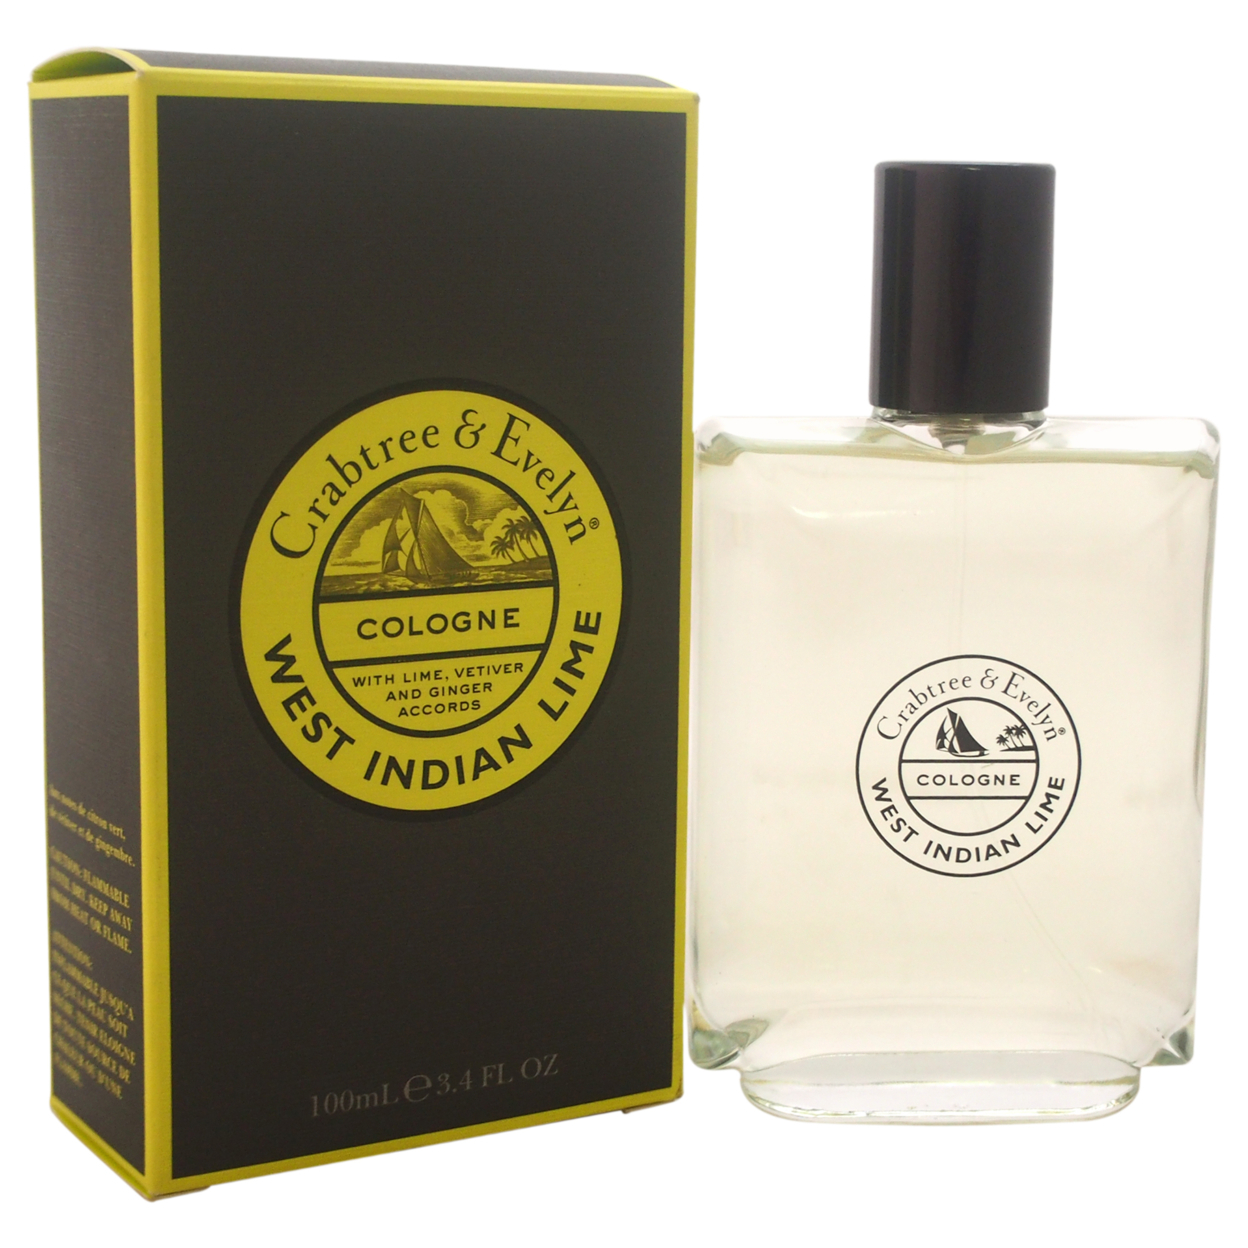 West Indian Lime by Crabtree & Evelyn for Men - 3.4 oz Cologne Spray 56d0b89ca3771c66288b6563